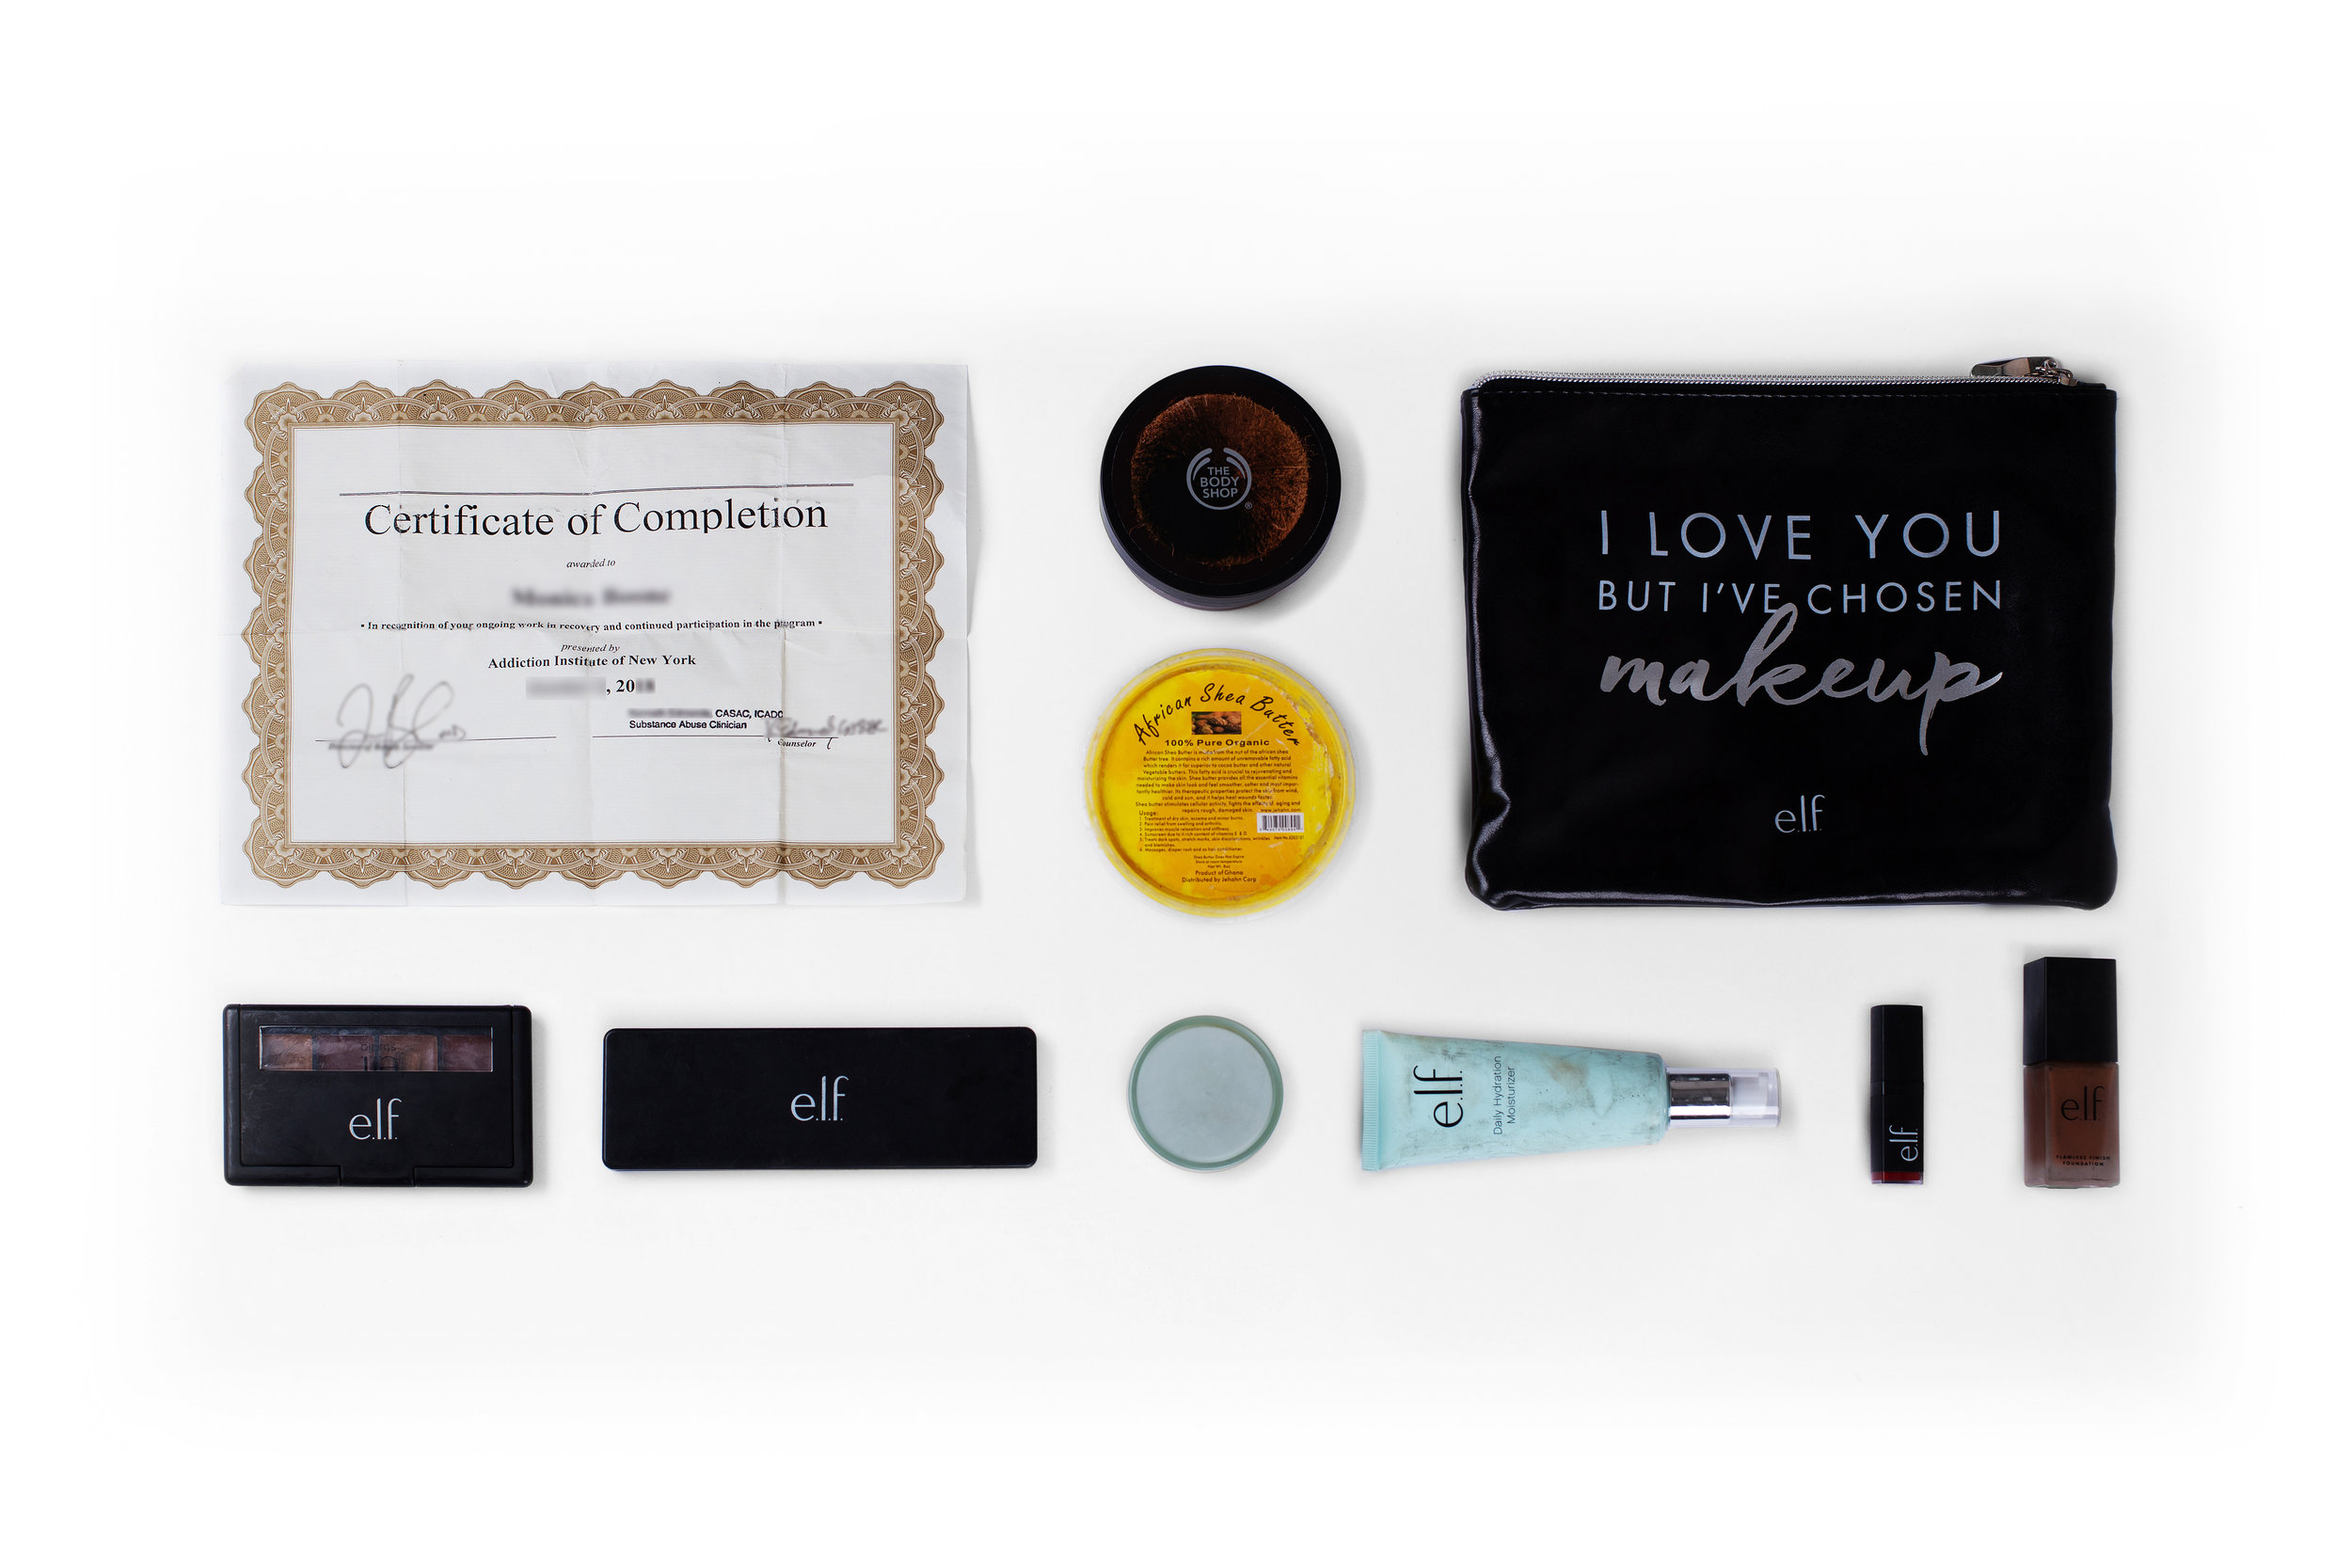 Certificate of Completion (Addiction Institute of New York) – The Body Shop – Makeup Shea Butter – Makeup Bag – Various Elf Makeup Items